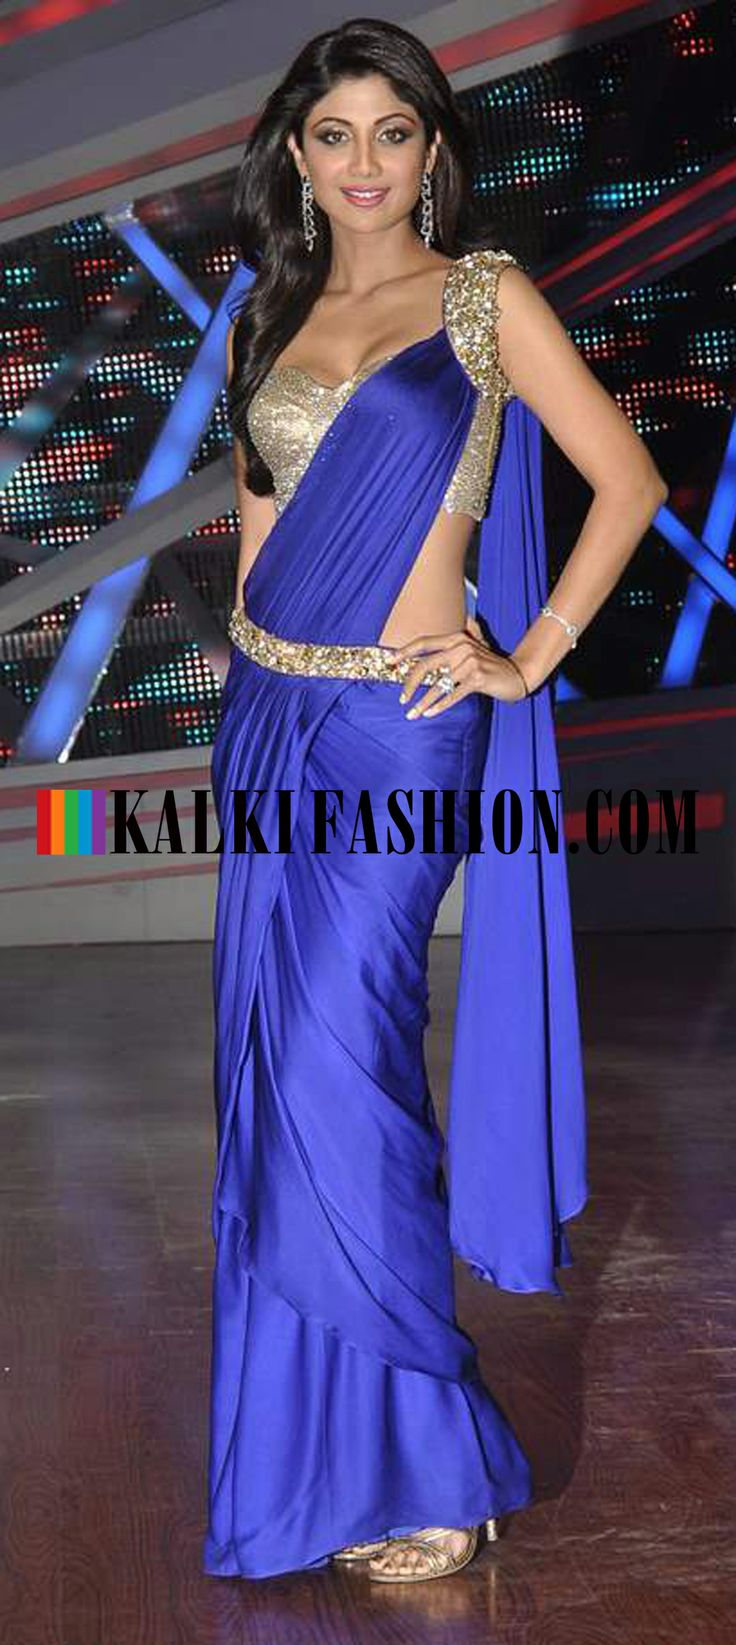 http://www.kalkifashion.com/ Shilpa Shetty in a electric blue gown saree with embroidered blouse on the set of Nach Baliye